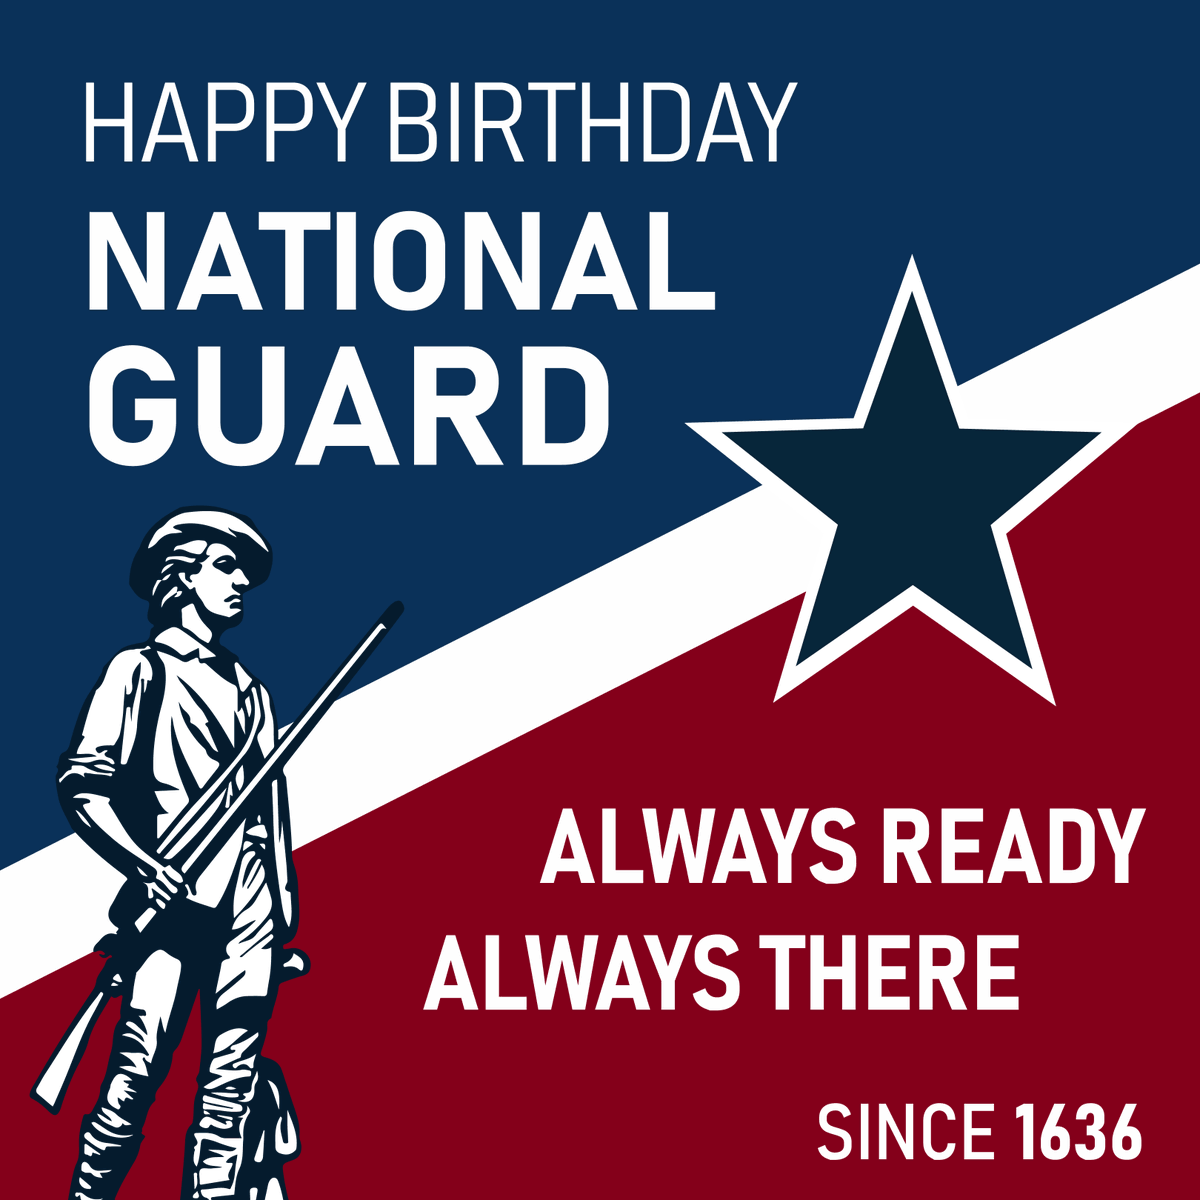 Wishing a very happy 382nd birthday to the @USNationalGuard! #Guard382